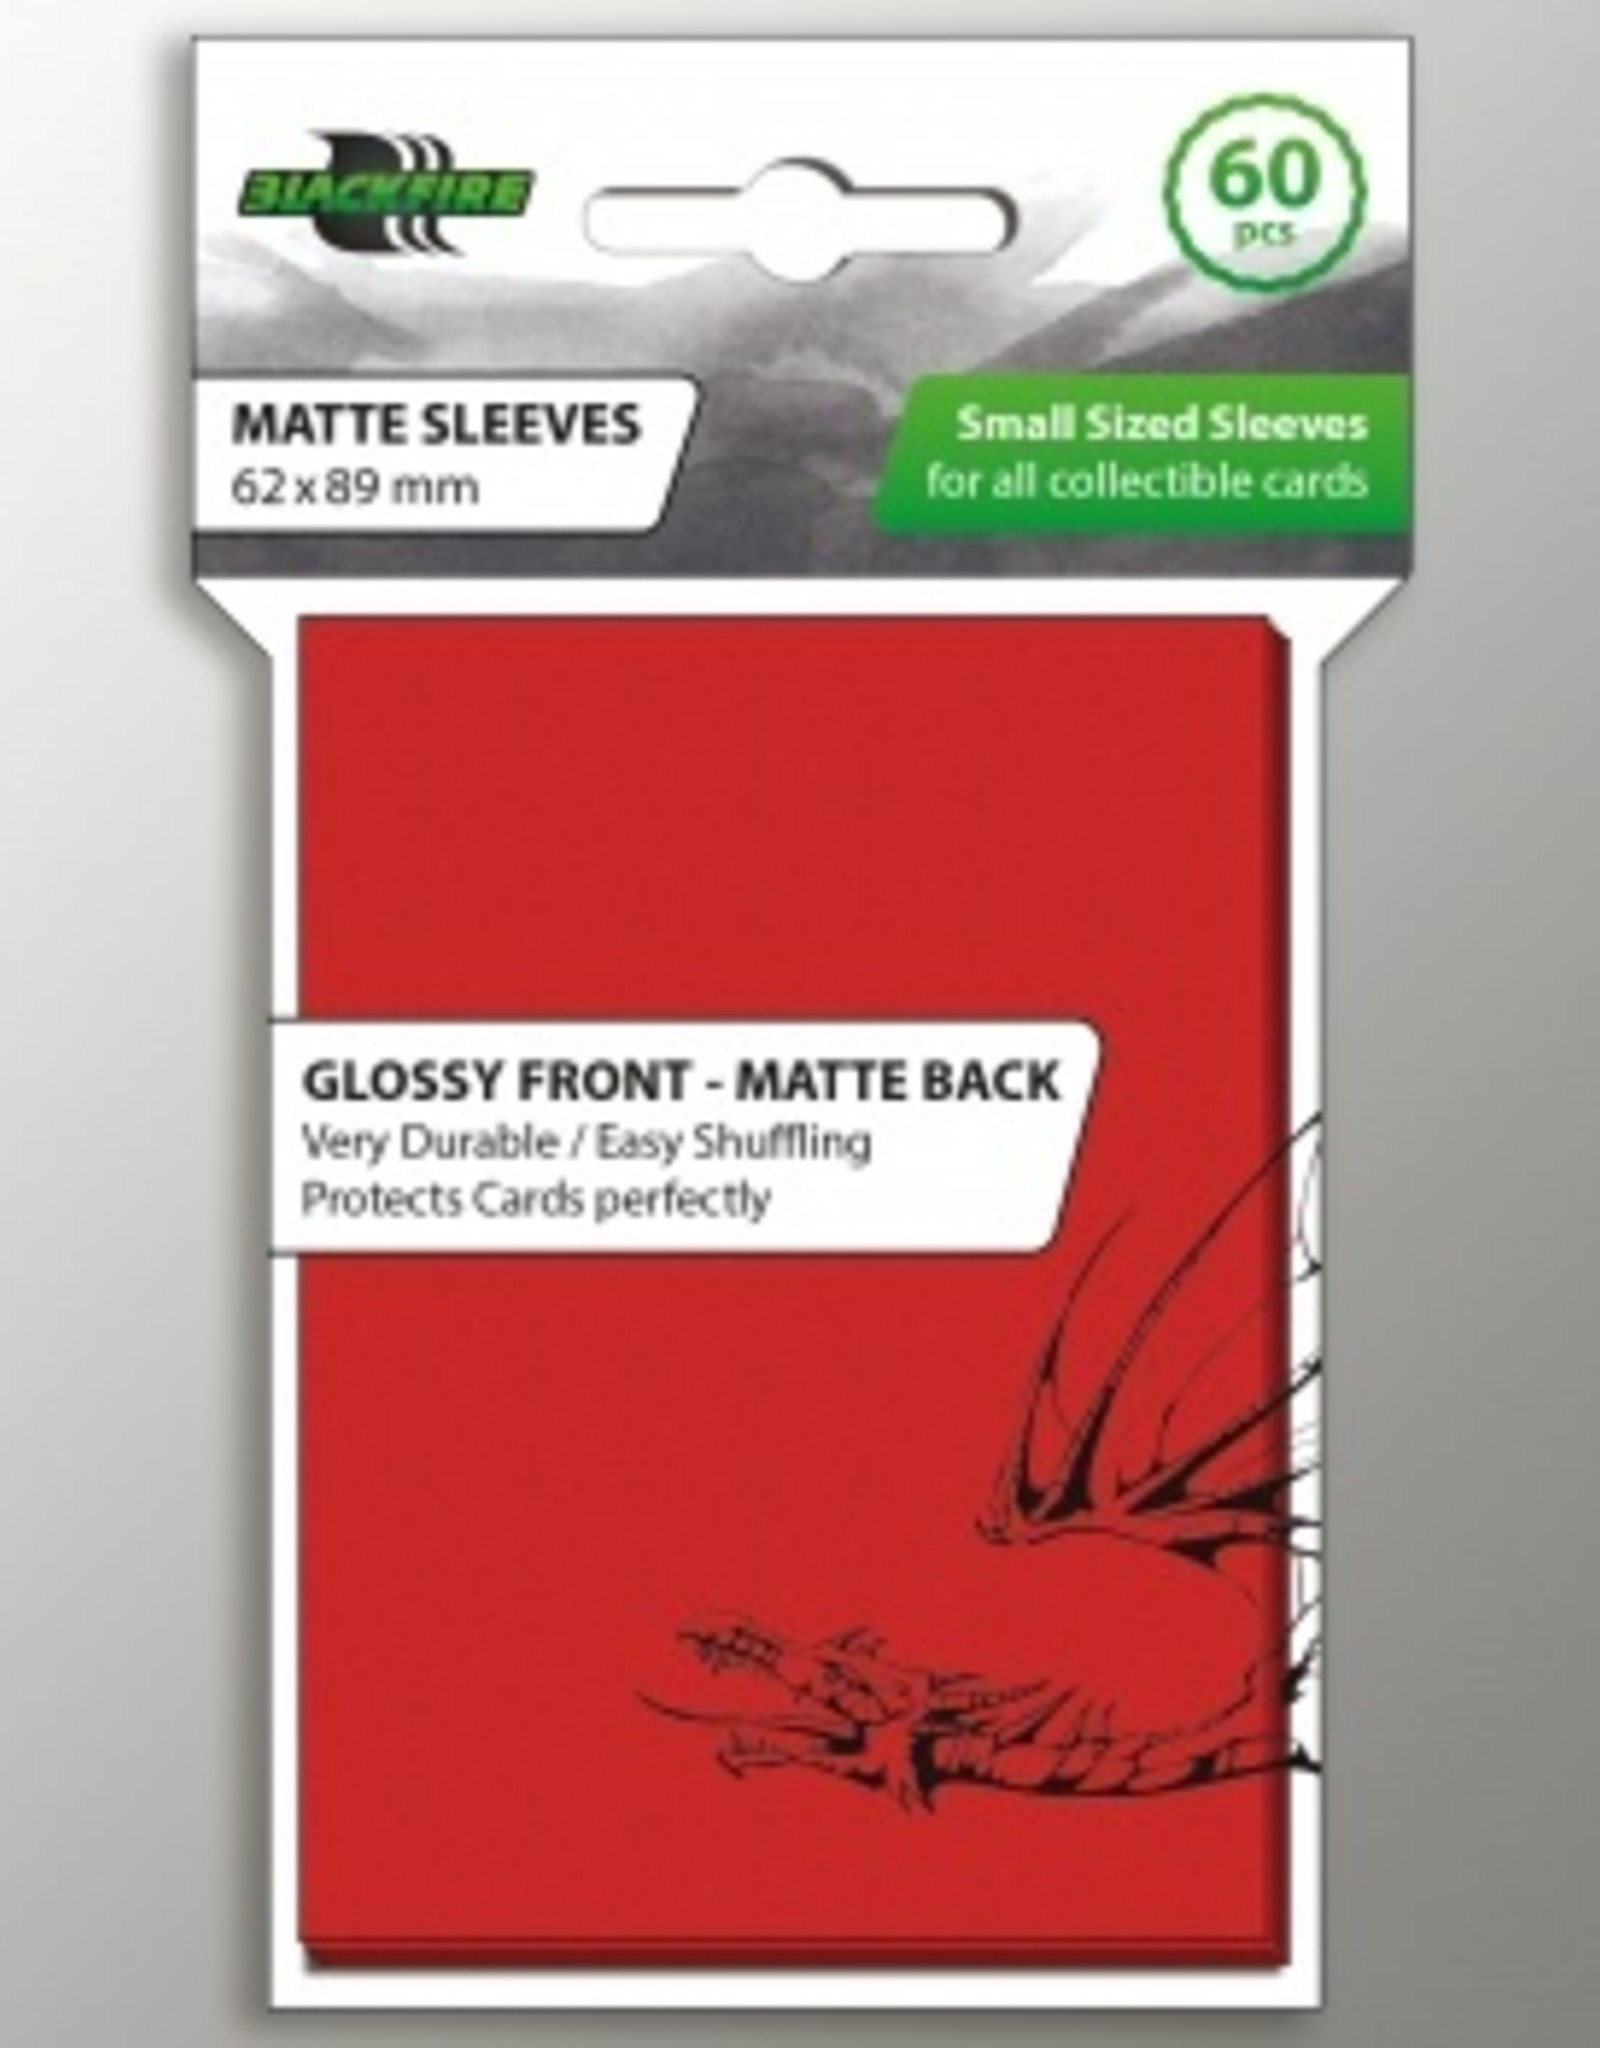 ADC Blackfire Blackfire Sleeves Small Glossy Front Matte Back Red (60) (62x89mm)